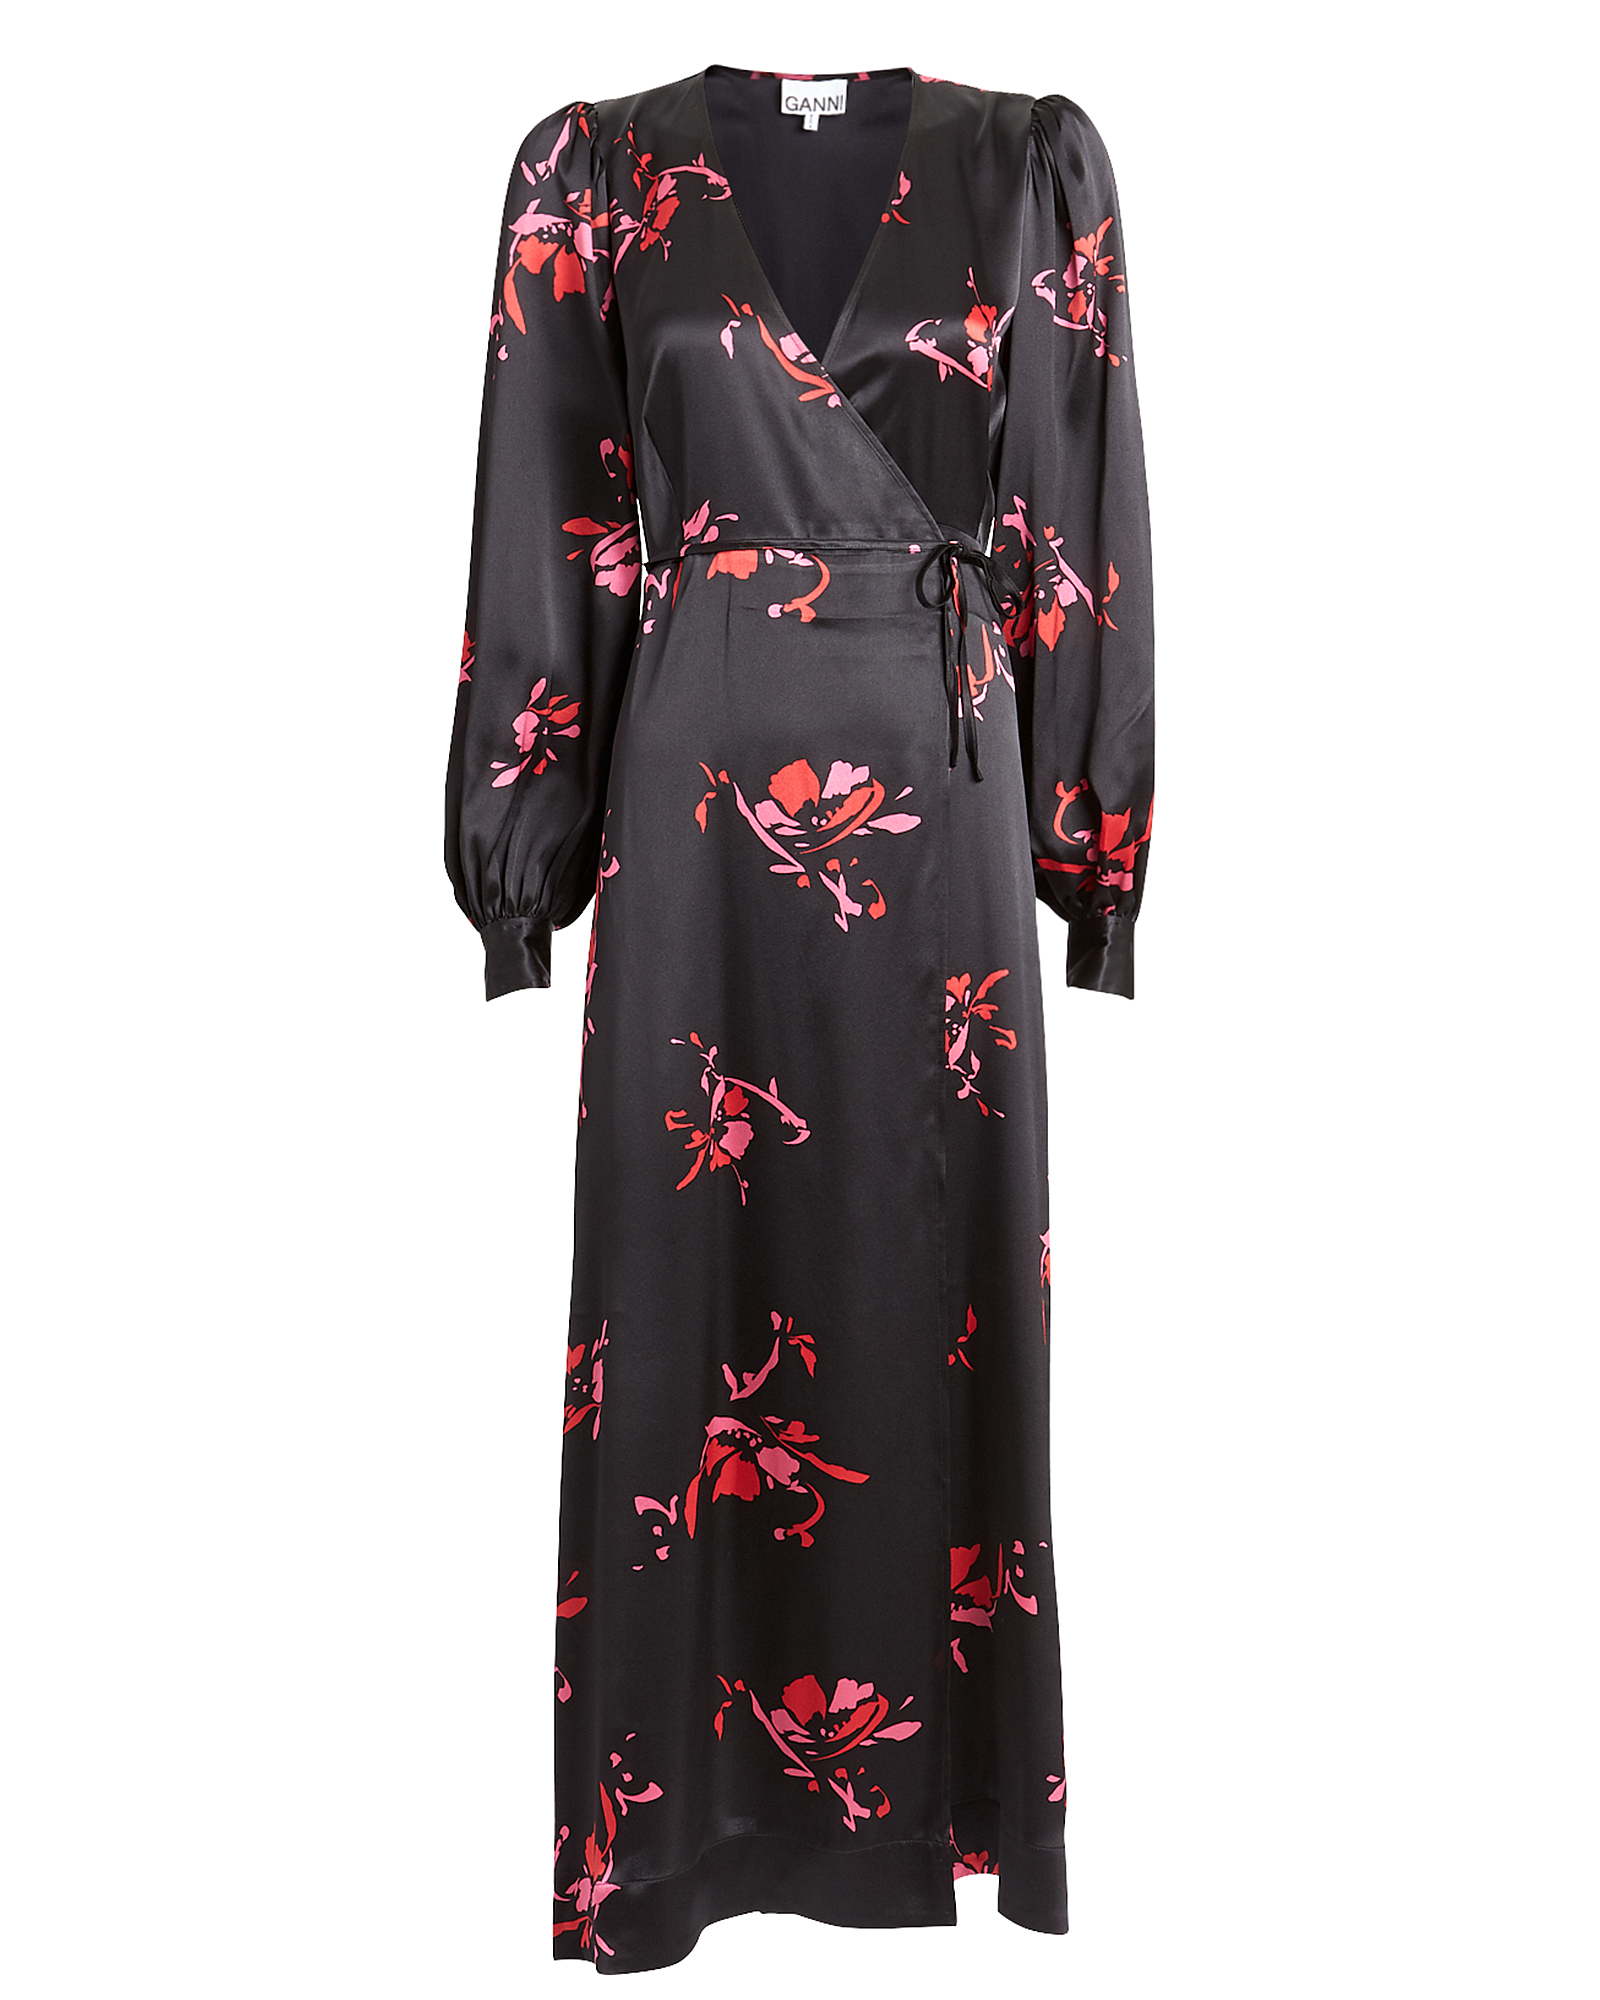 Ganni Dresses GANNI FLORAL PRINT SATIN WRAP DRESS